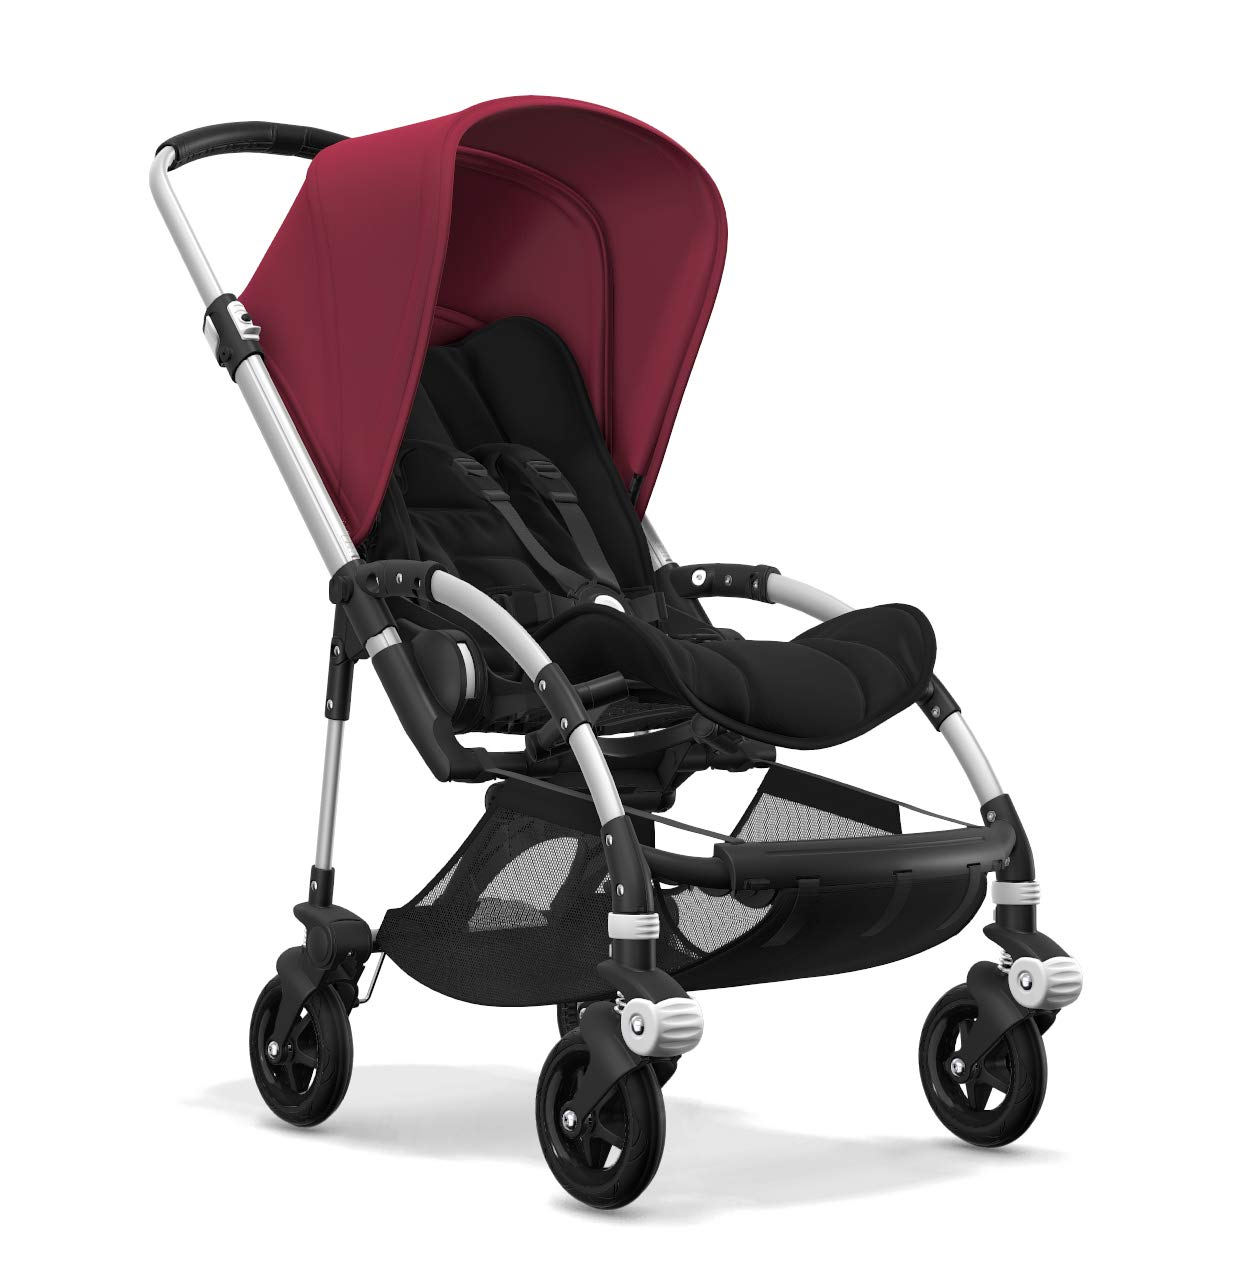 Bugaboo Bee 5, Foldable and Lightweight Pushchair, Converts Into Pram, Black/Ruby Red Bugaboo The perfect choice for city living Compact yet comfortable for parent and baby Light and easy one-piece fold for small spaces 2